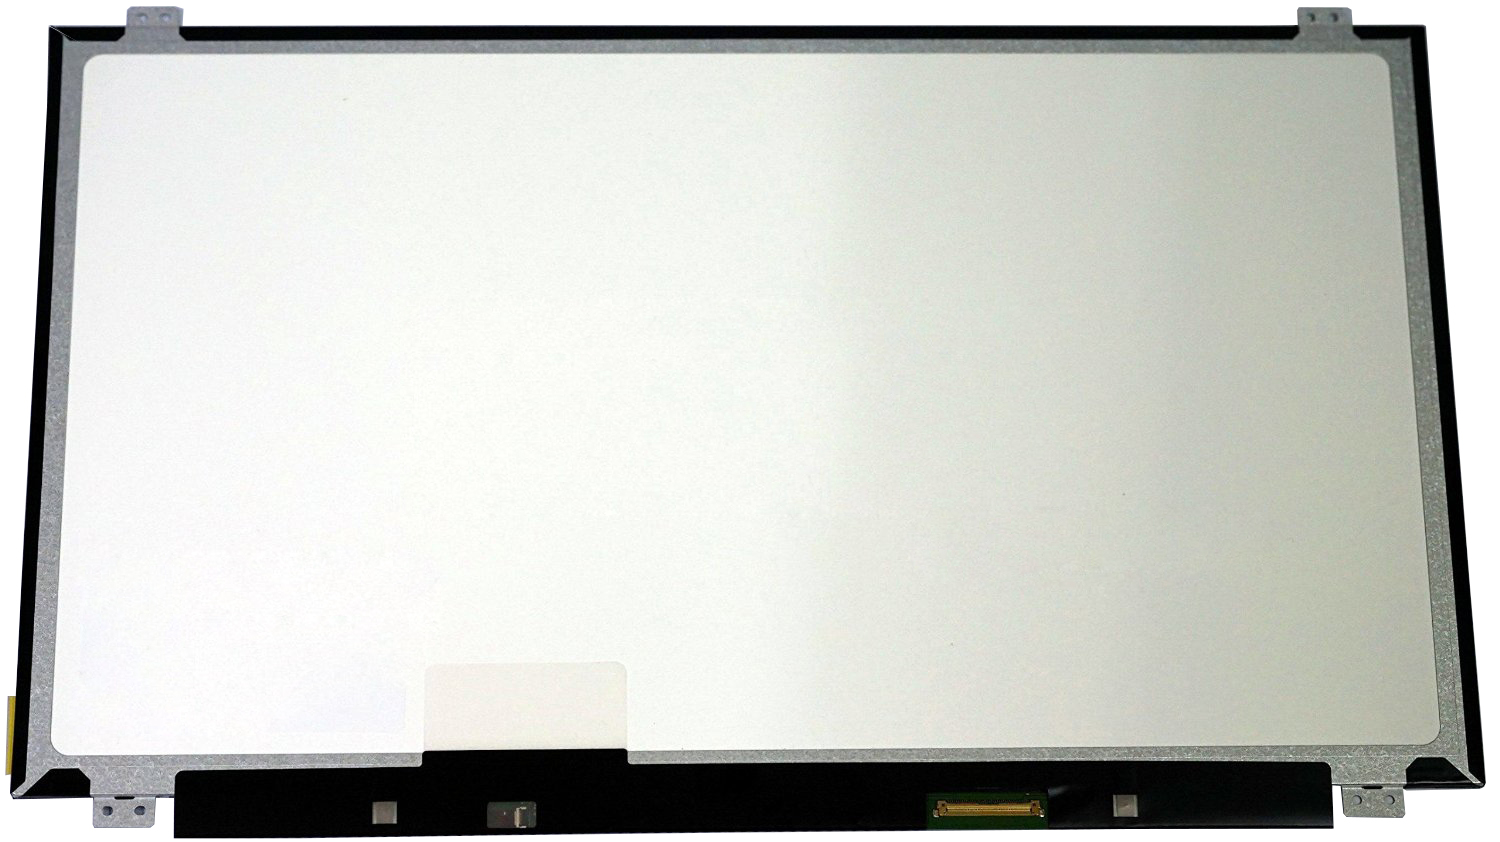 QuYing Laptop LCD Screen for ACER ASPIRE V3-331 V3-371 SERIES a065vl01 v3 lcd screen